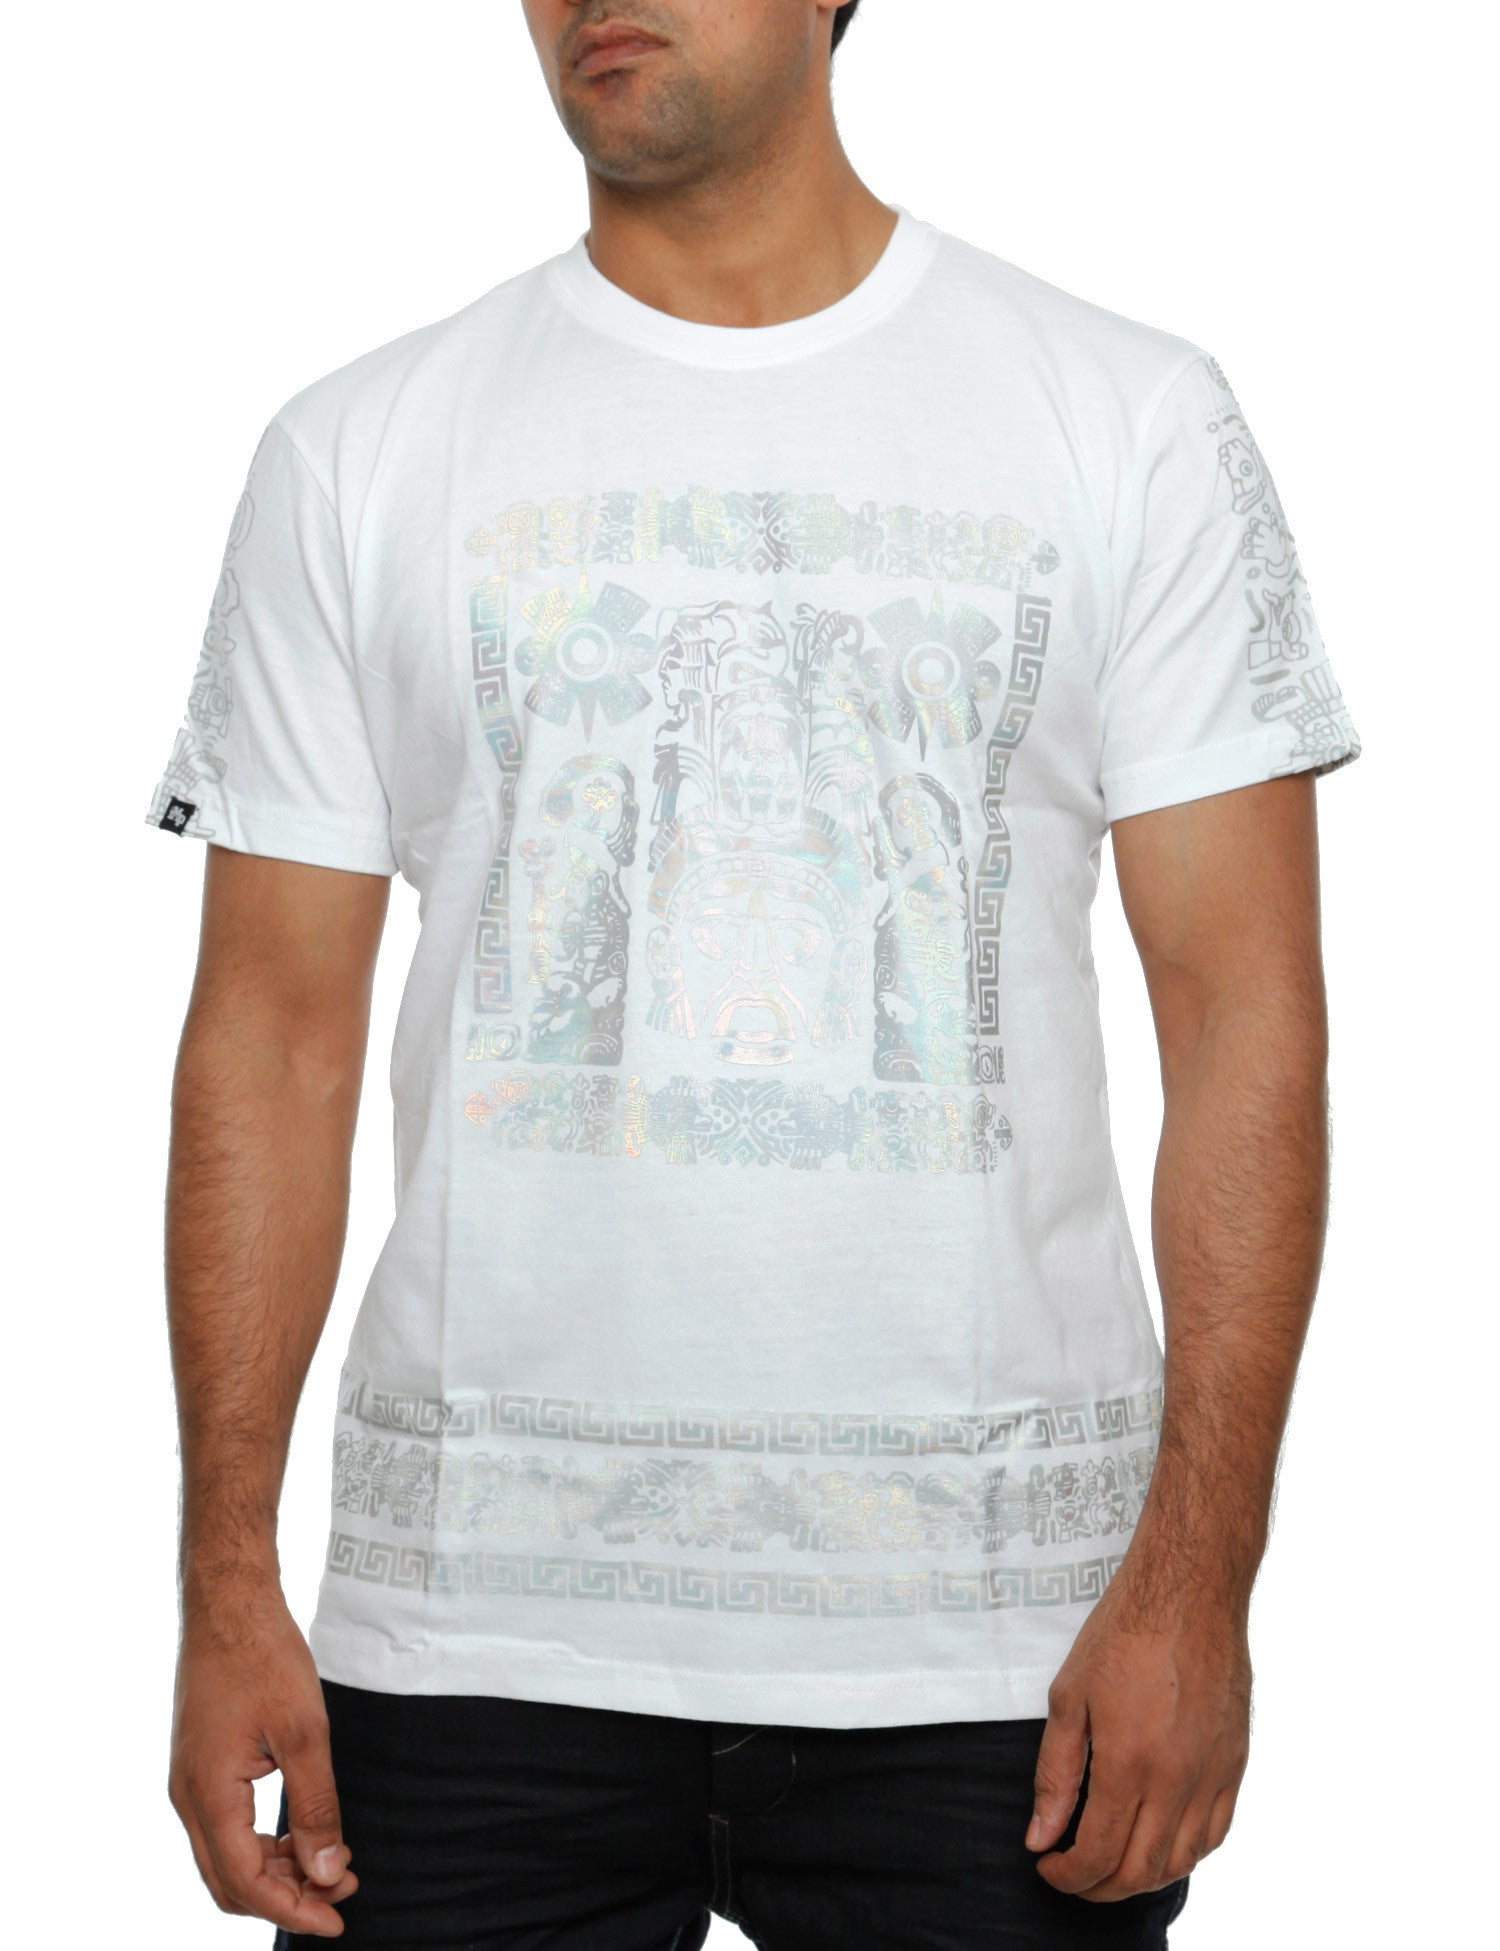 Imperious ?Hologram Mayan? T-Shirt TS542 White